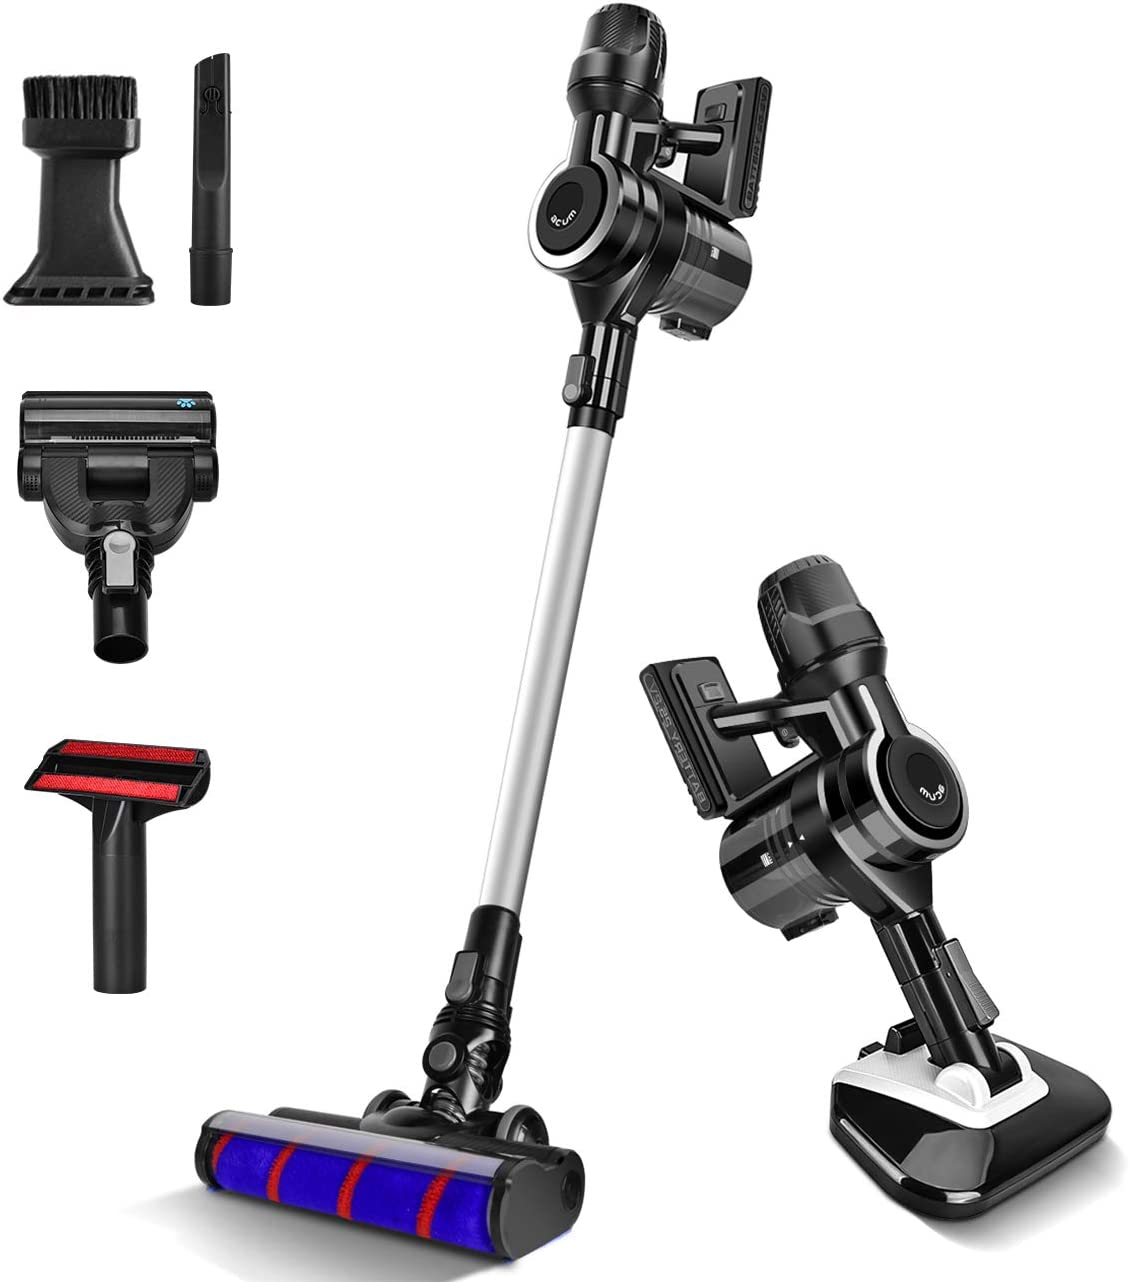 acum Cordless Vacuum Cleaner 23KPa Powerful Suction 6 Brush Attachments, Lightweight & 30min Lasting Runtime for Hardwood Floor Carpet Mattress & Pet Hair Cleaning, Black